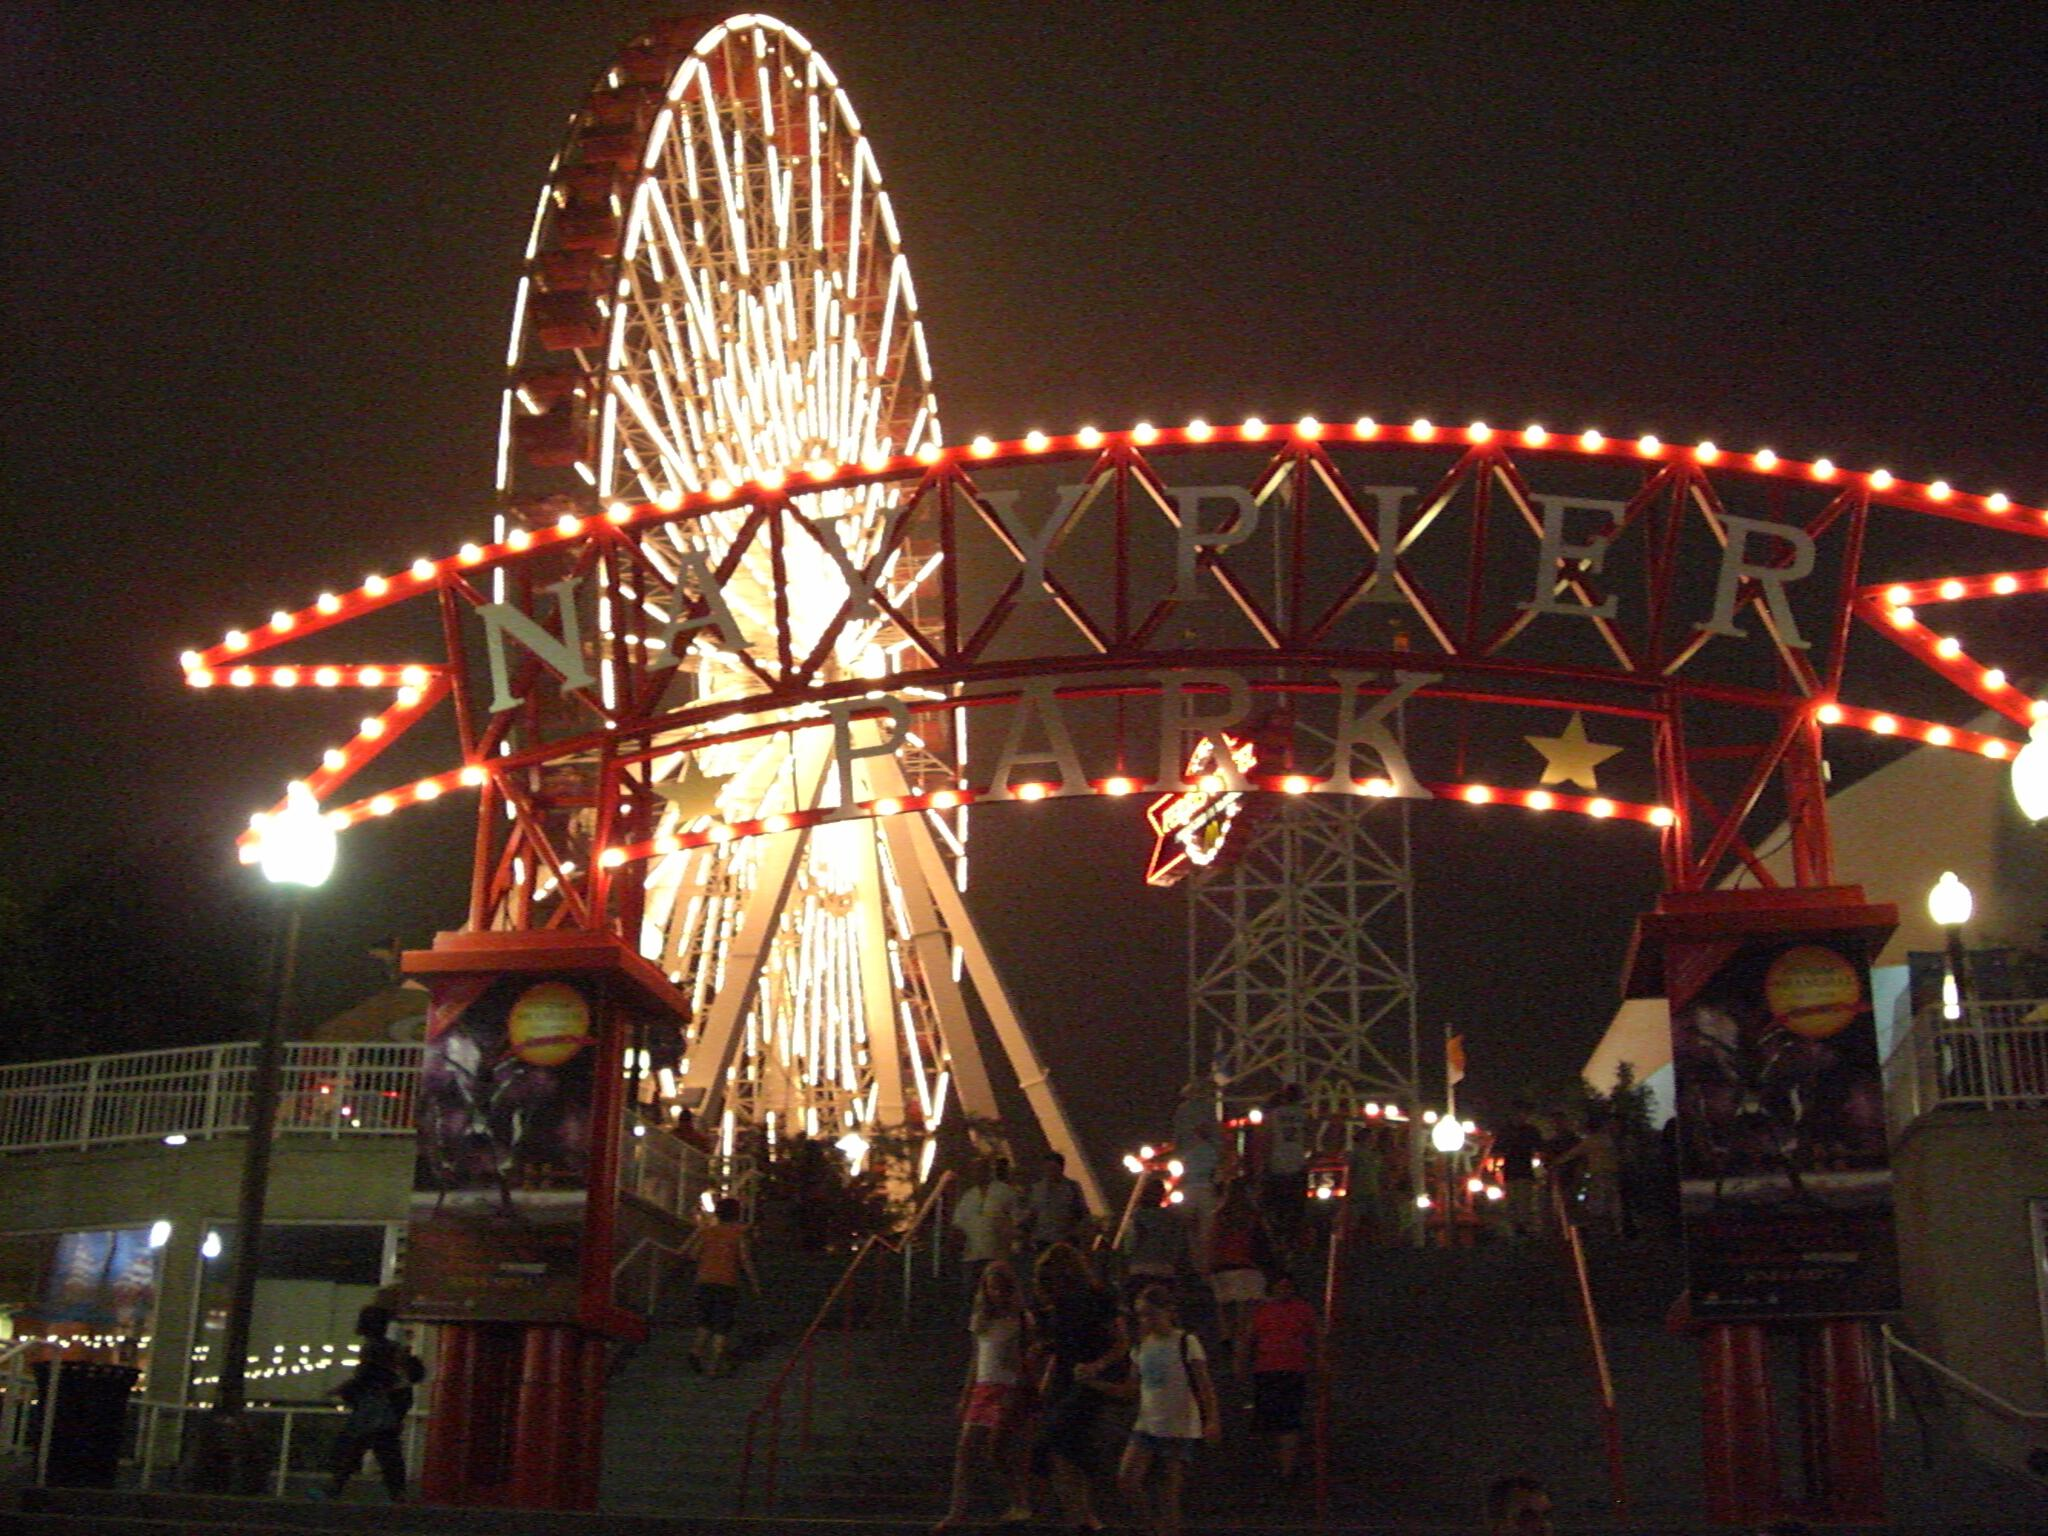 Navy Pier Park Ferris wheel at night